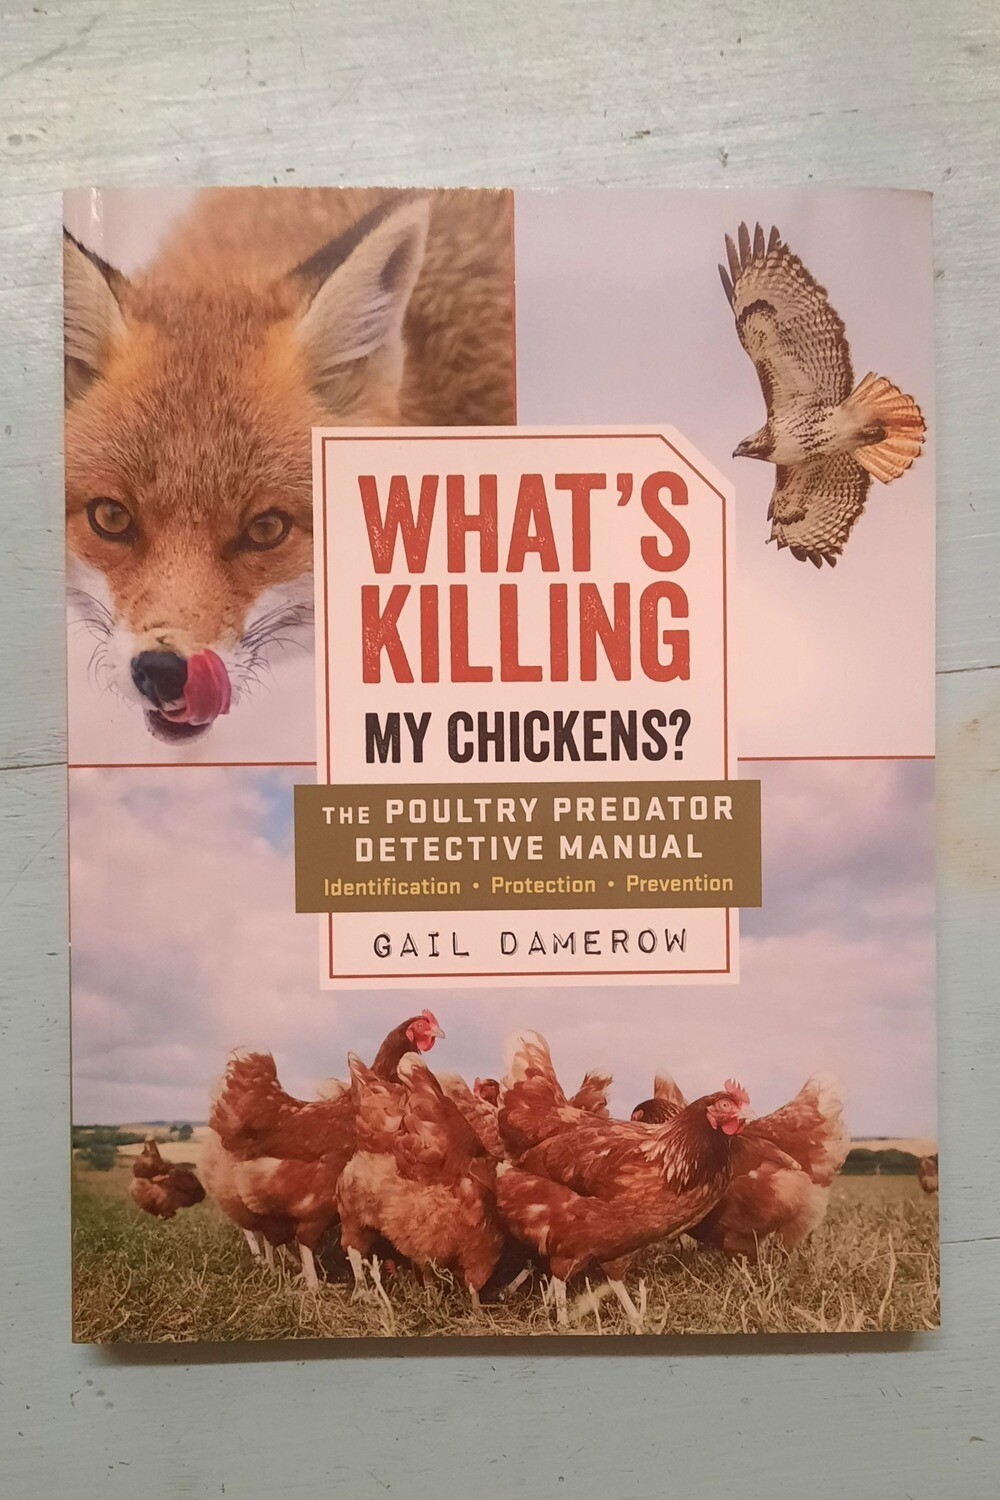 What's Killing My Chickens? by Gail Damerow